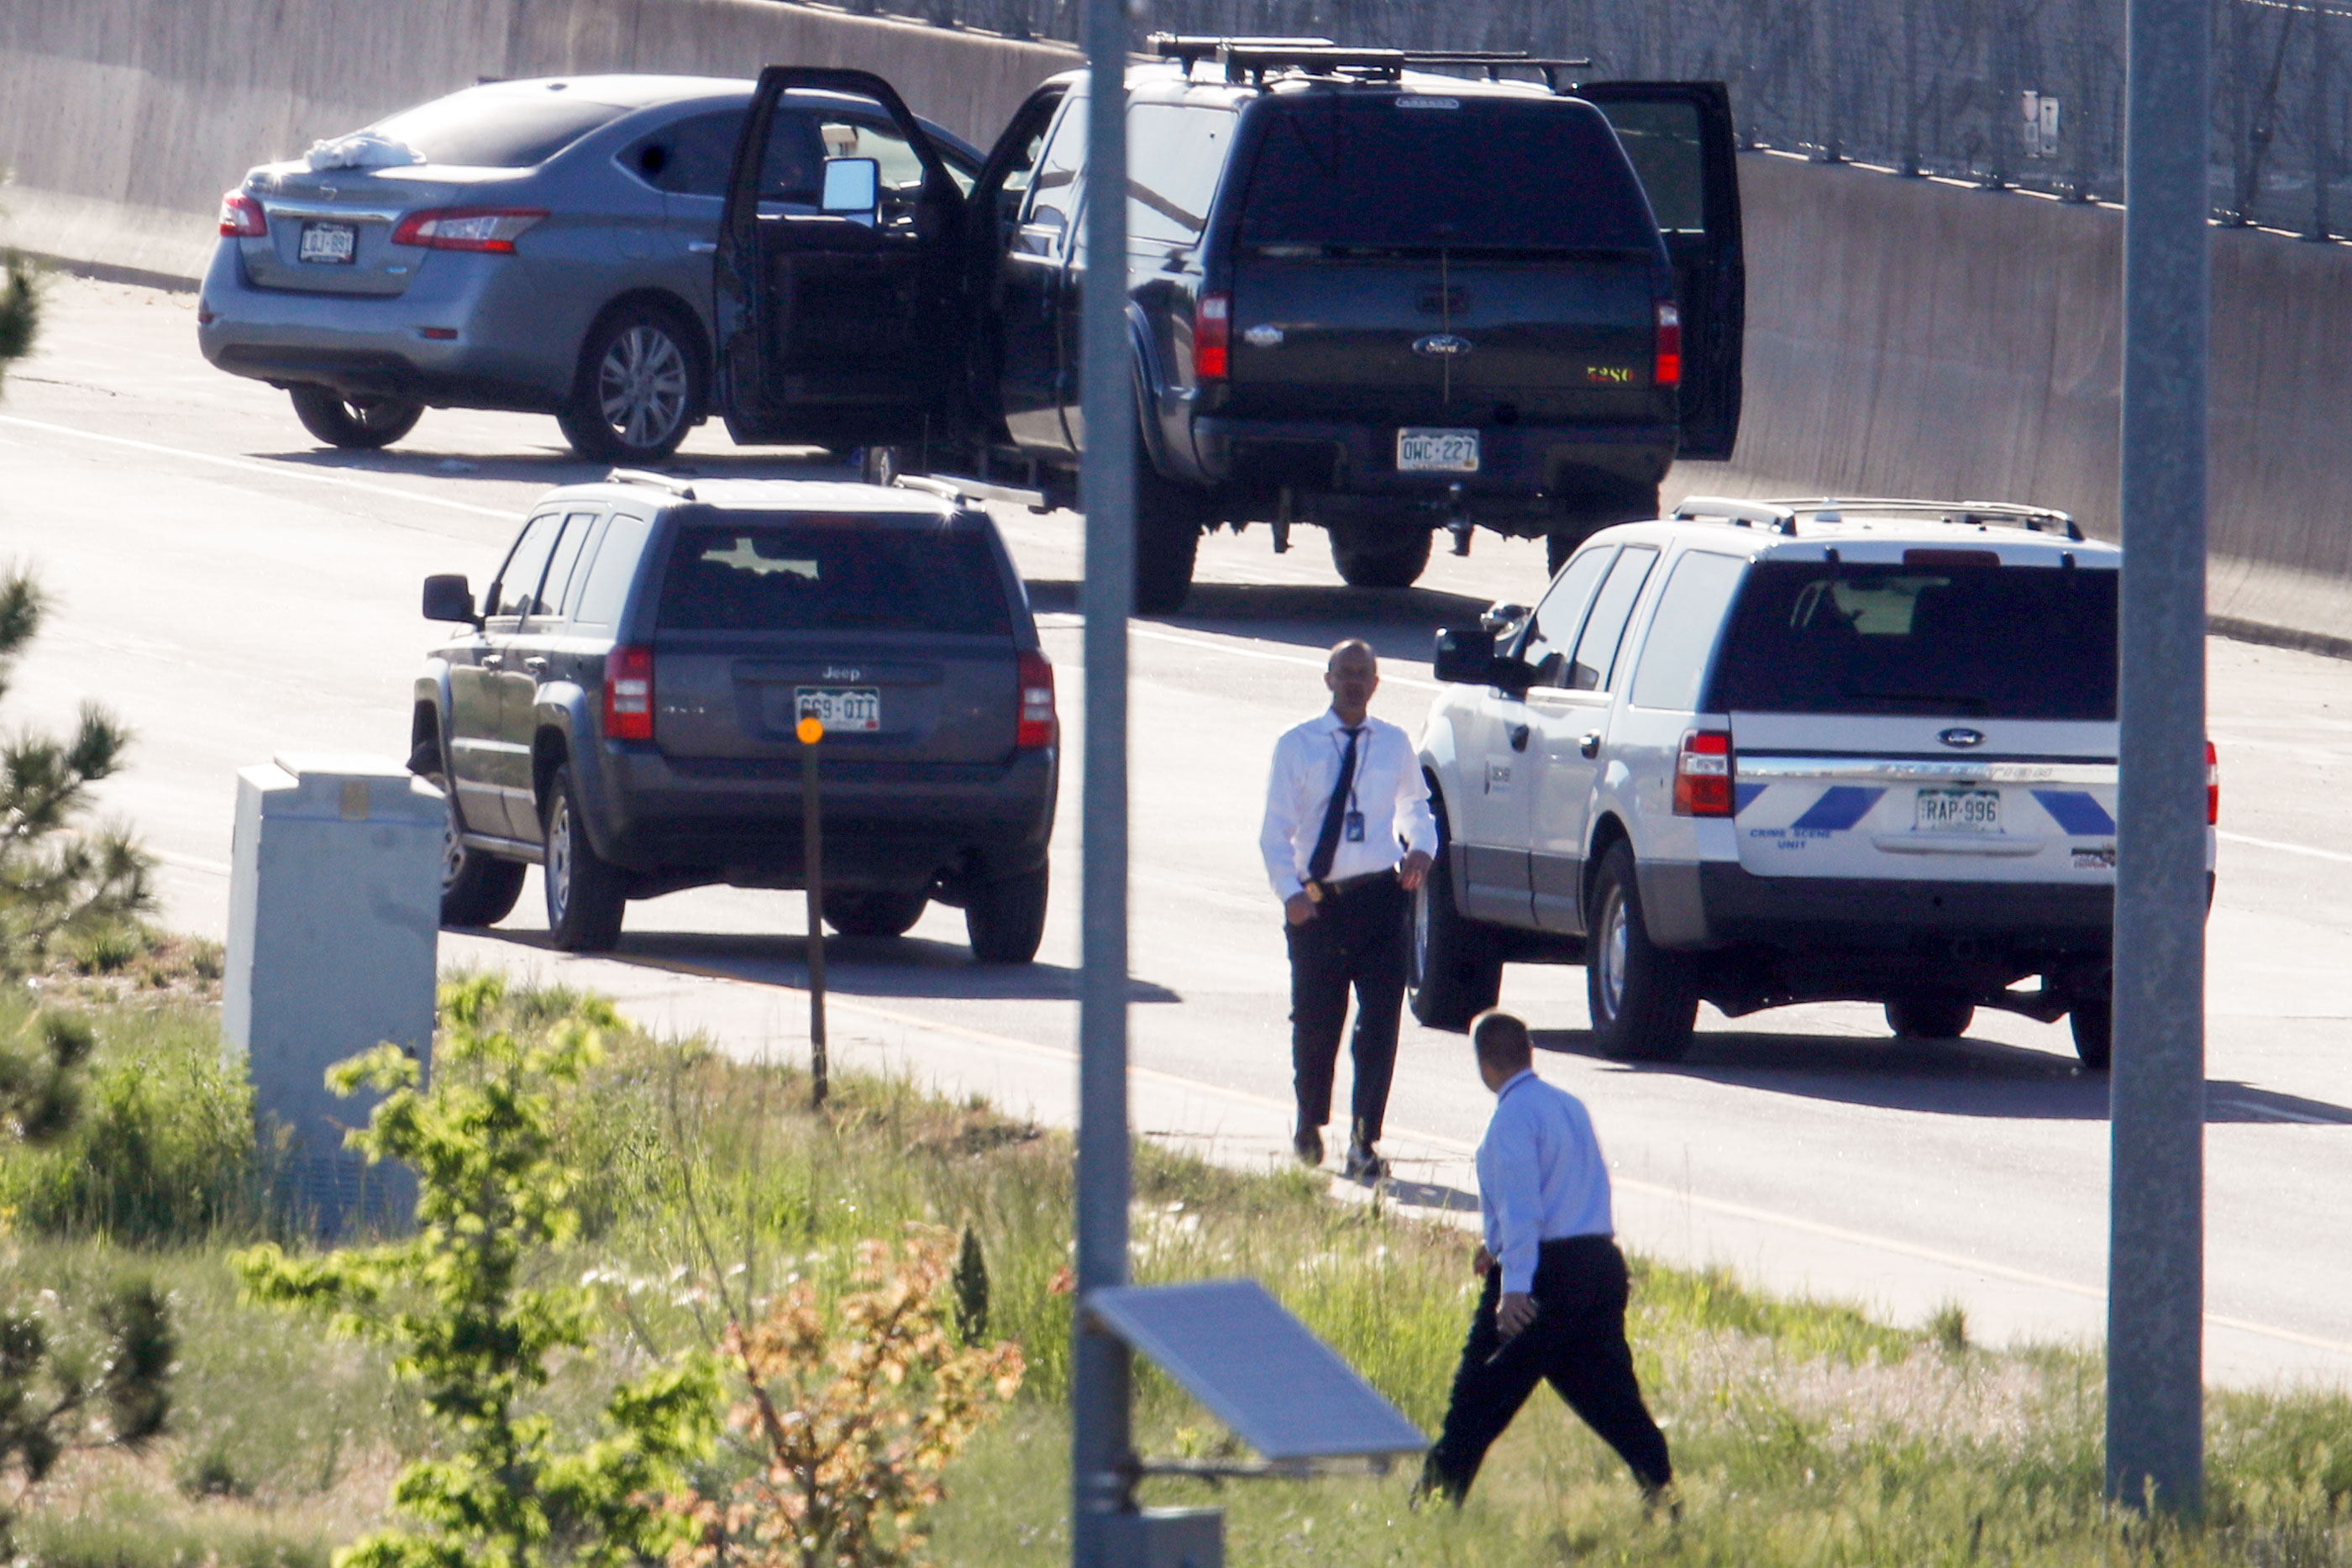 Denver Police Department detectives, foreground, investigate near where a Nissan sedan, top left, being driven by an Uber driver crashed into a retaining wall along Interstate 25 south of downtown Denver early Friday, June 1, 2018.